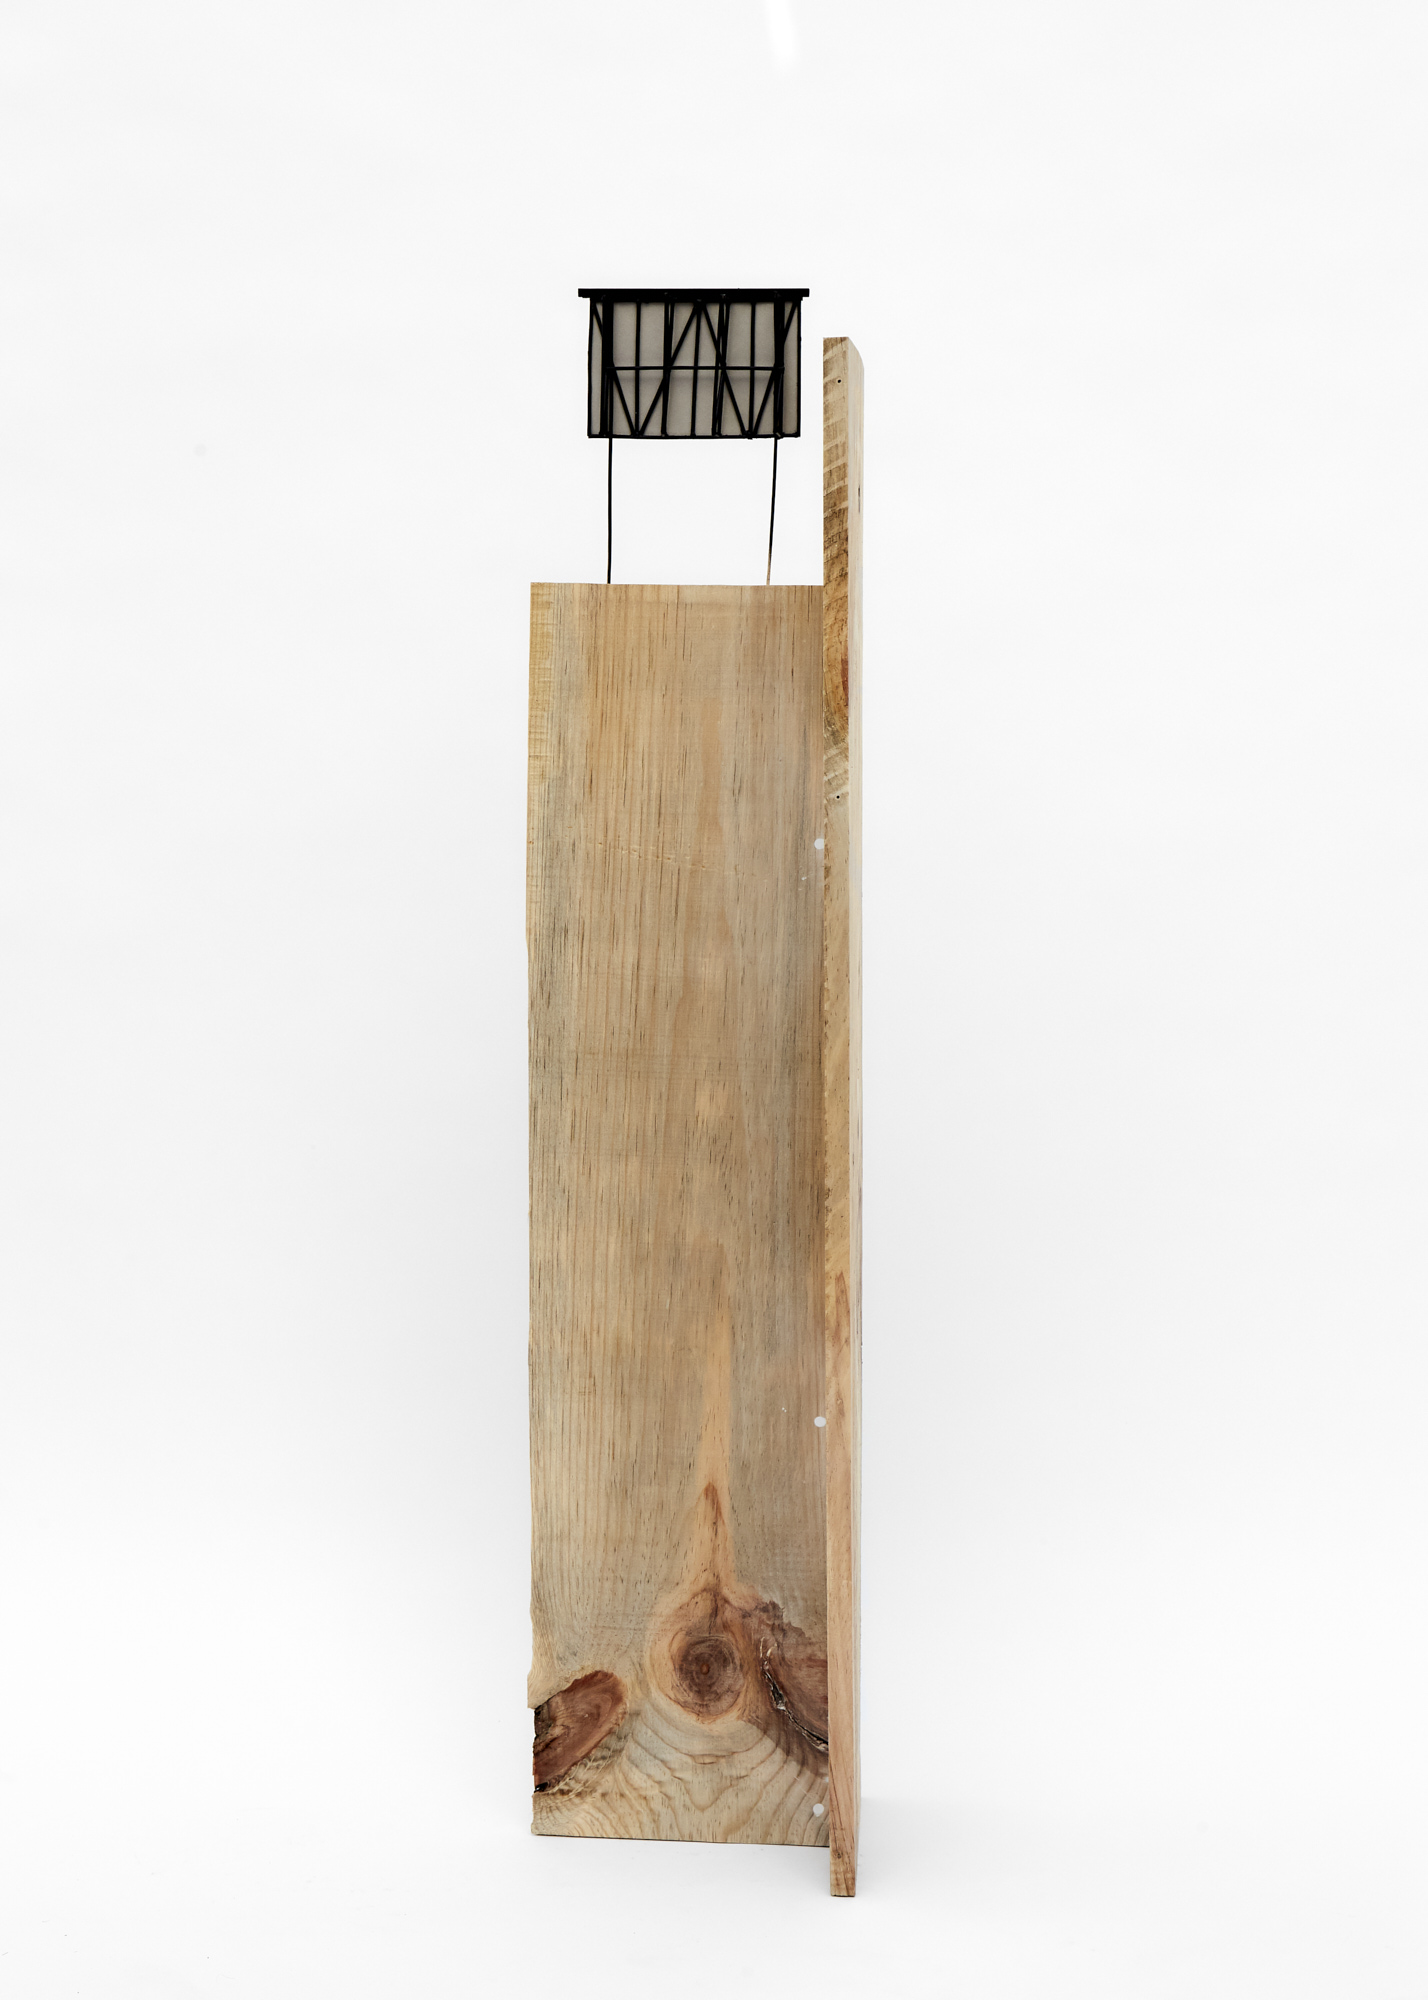 Charlie Godet Thomas, Rooftop Poem (Reap), 2020. Wood, cut section of paper palette, wooden dowels, plastic, screws, glue, acrylic paint. 124 x 24 x 26 cm.